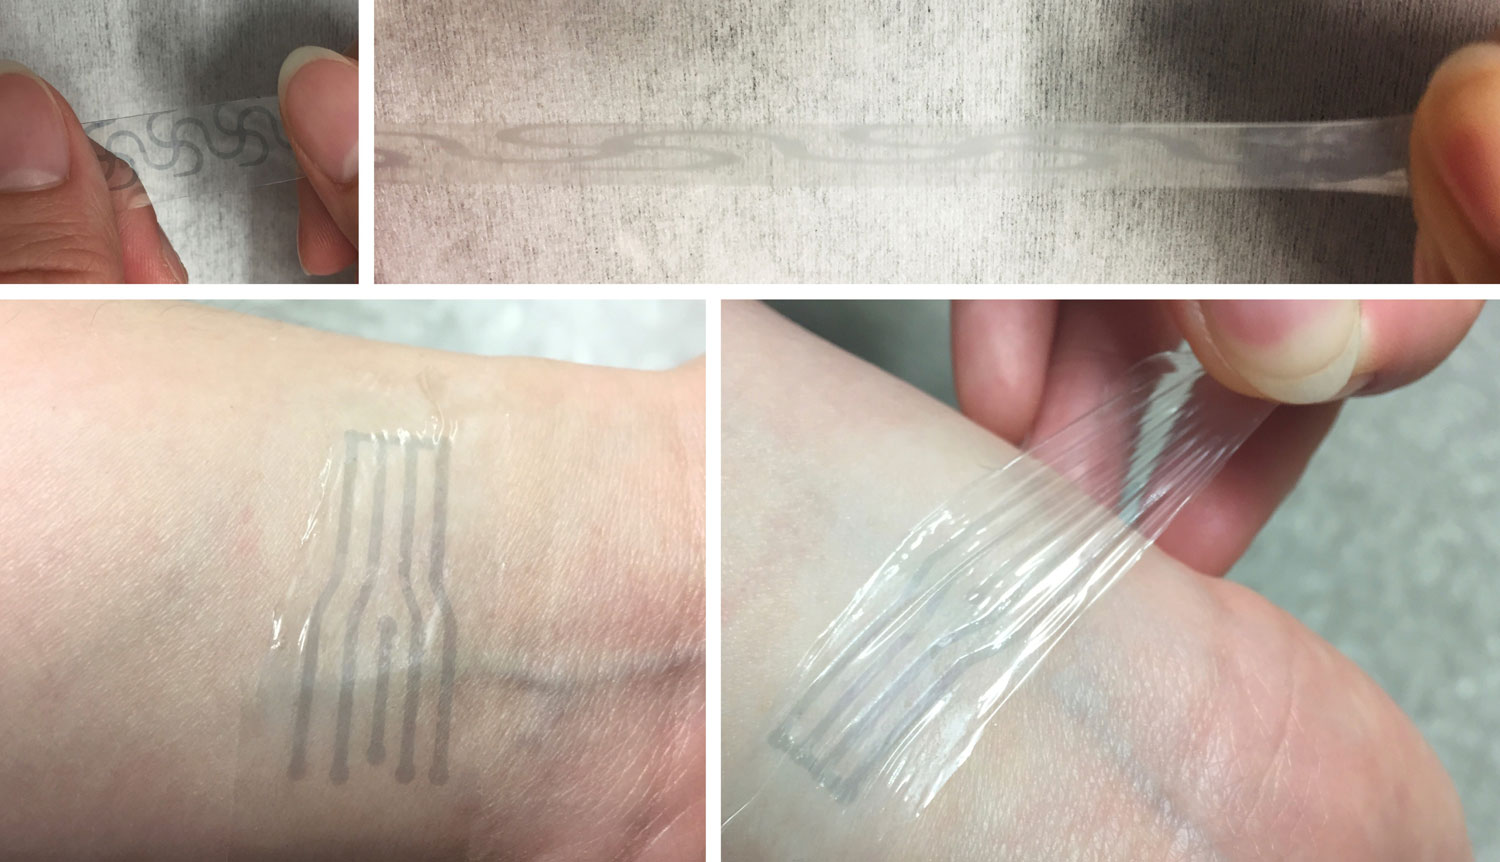 "A printed electrode pattern of the polymer being stretched to several times of its original length (top), and a transparent, highly stretchy ""electronic skin"" patch forming an intimate interface with the human skin to potentially measure various biomarkers (bottom). Image credit: Bao Lab"